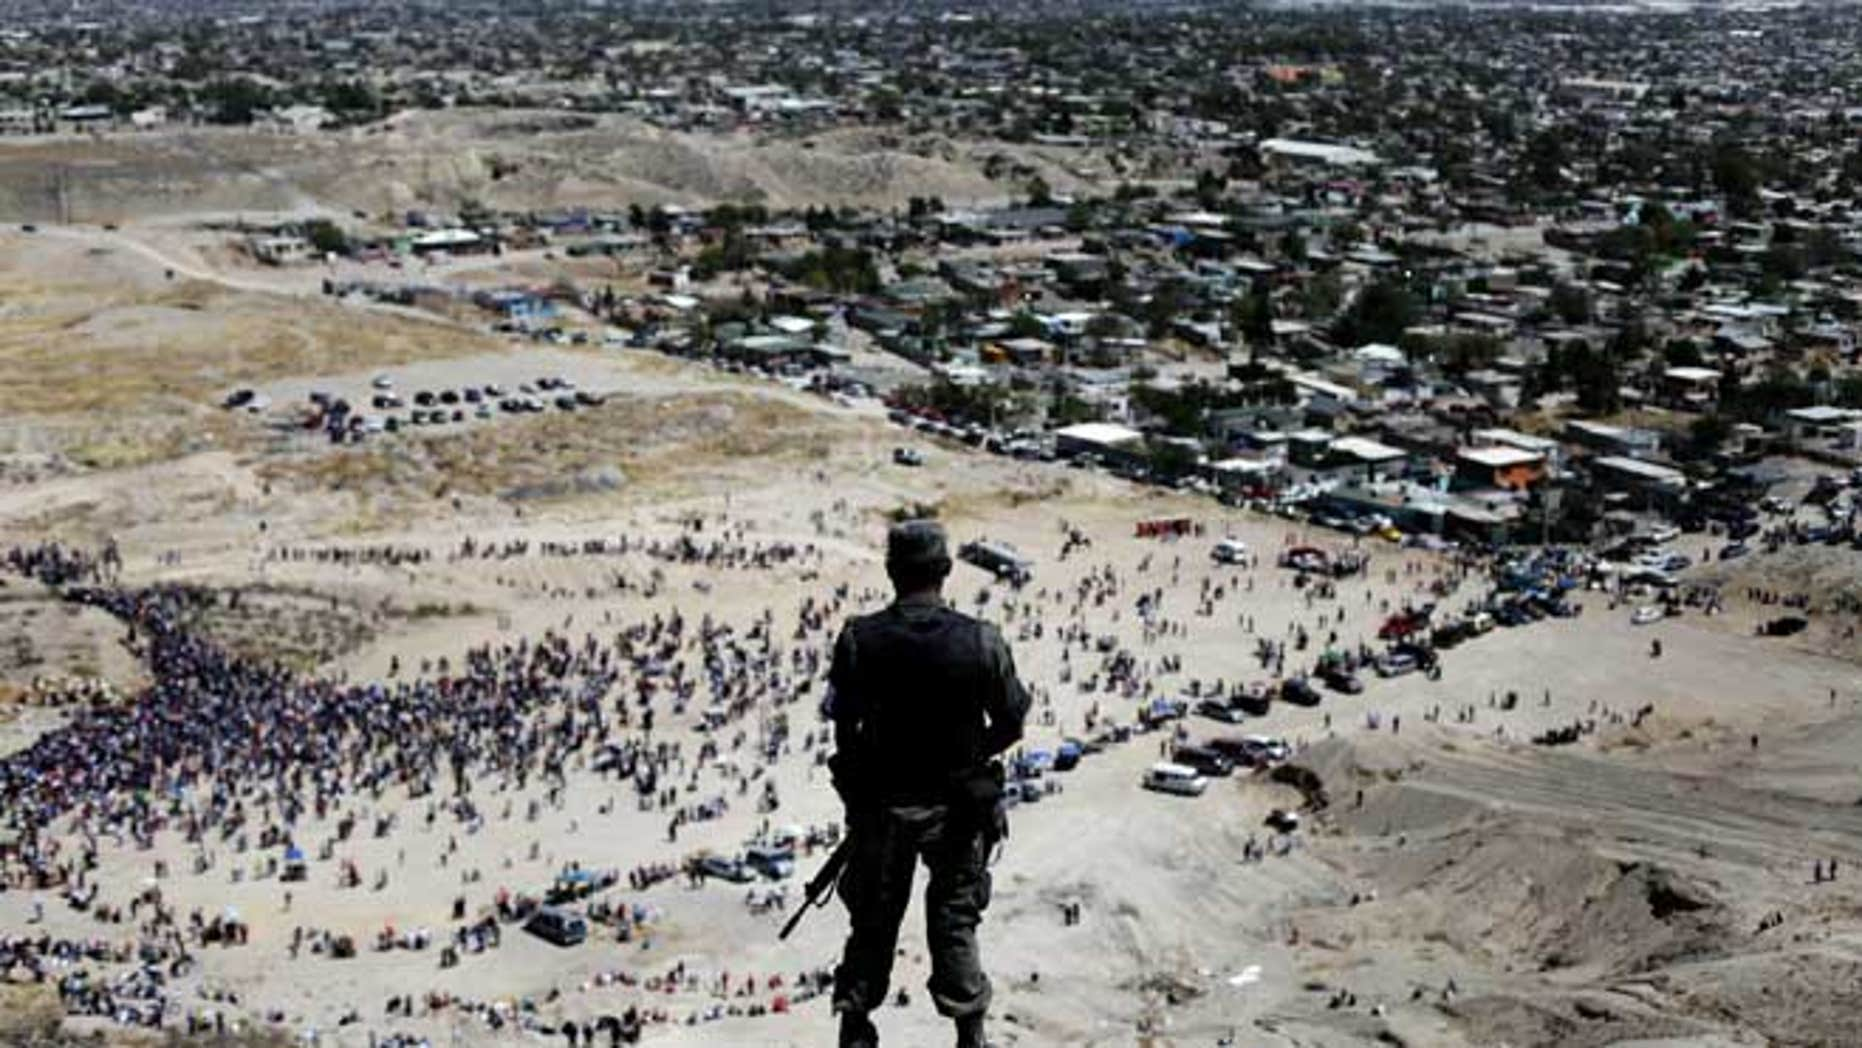 In this April 10, 2009 file photo, a soldier stands guard on the top of a hill as faithful commemorate Good Friday during Holy Week in Ciudad Juarez, Mexico. Killings by criminal gangs in the drug violence-wracked border city of Ciudad Juarez fell by 42 percent in the first six months of this year from the same period of 2011, Mexicoís army said Wednesday July 11, 2012.